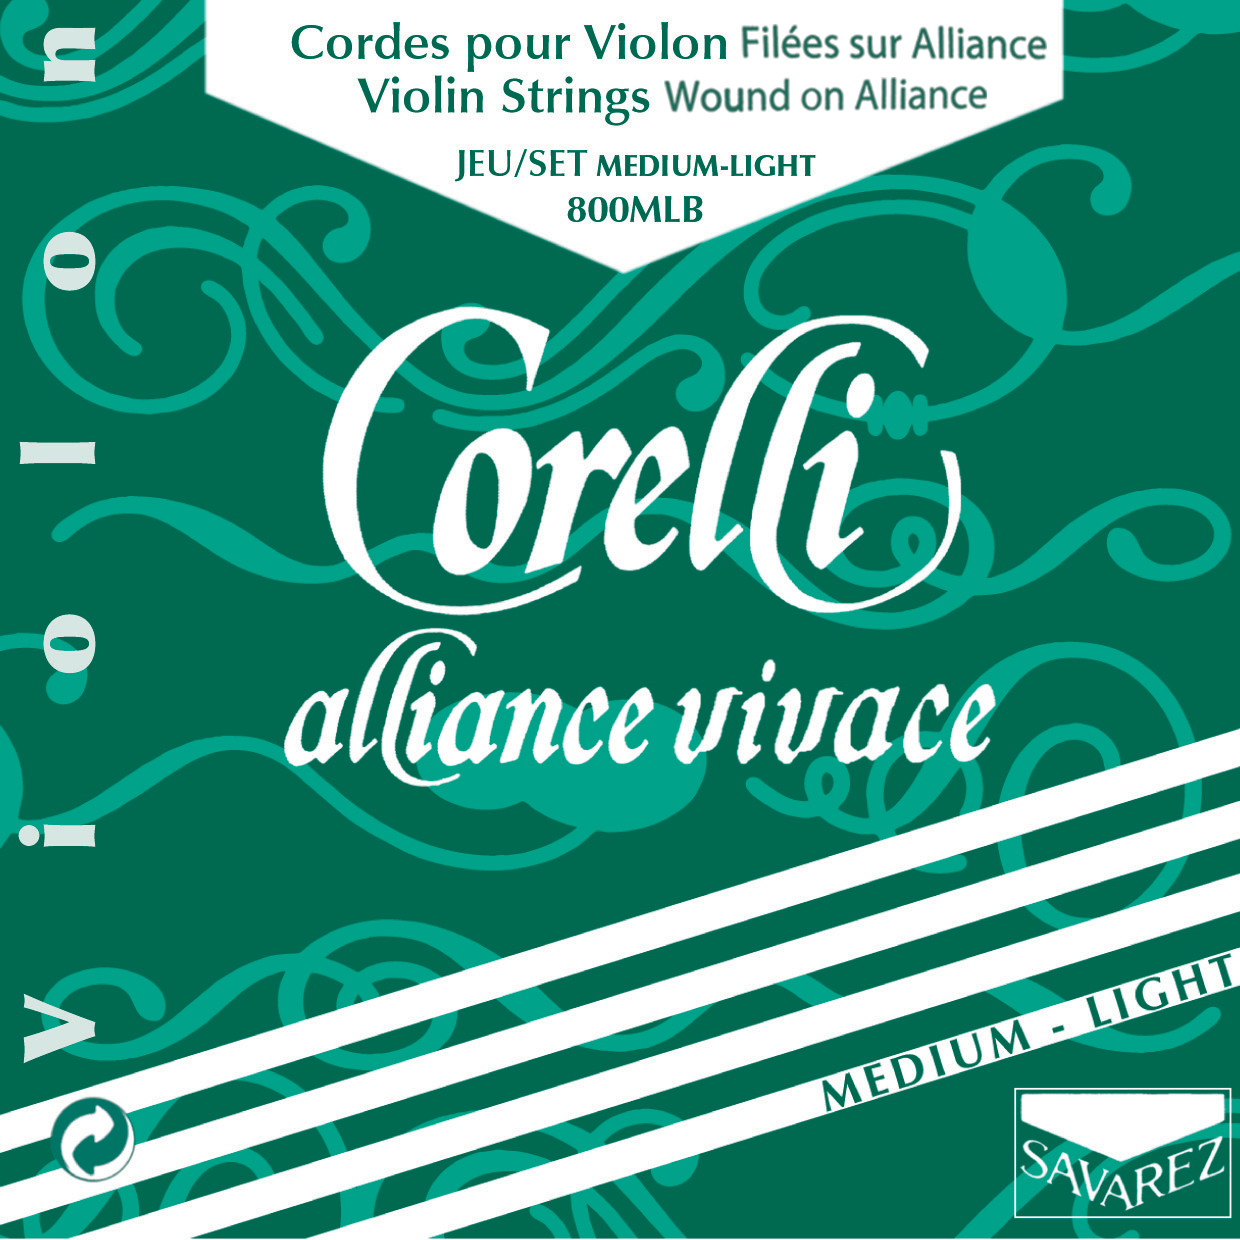 CORELLI ALLIANCE VIVACE MEDIUM LIGHT 800MLB VIOLON